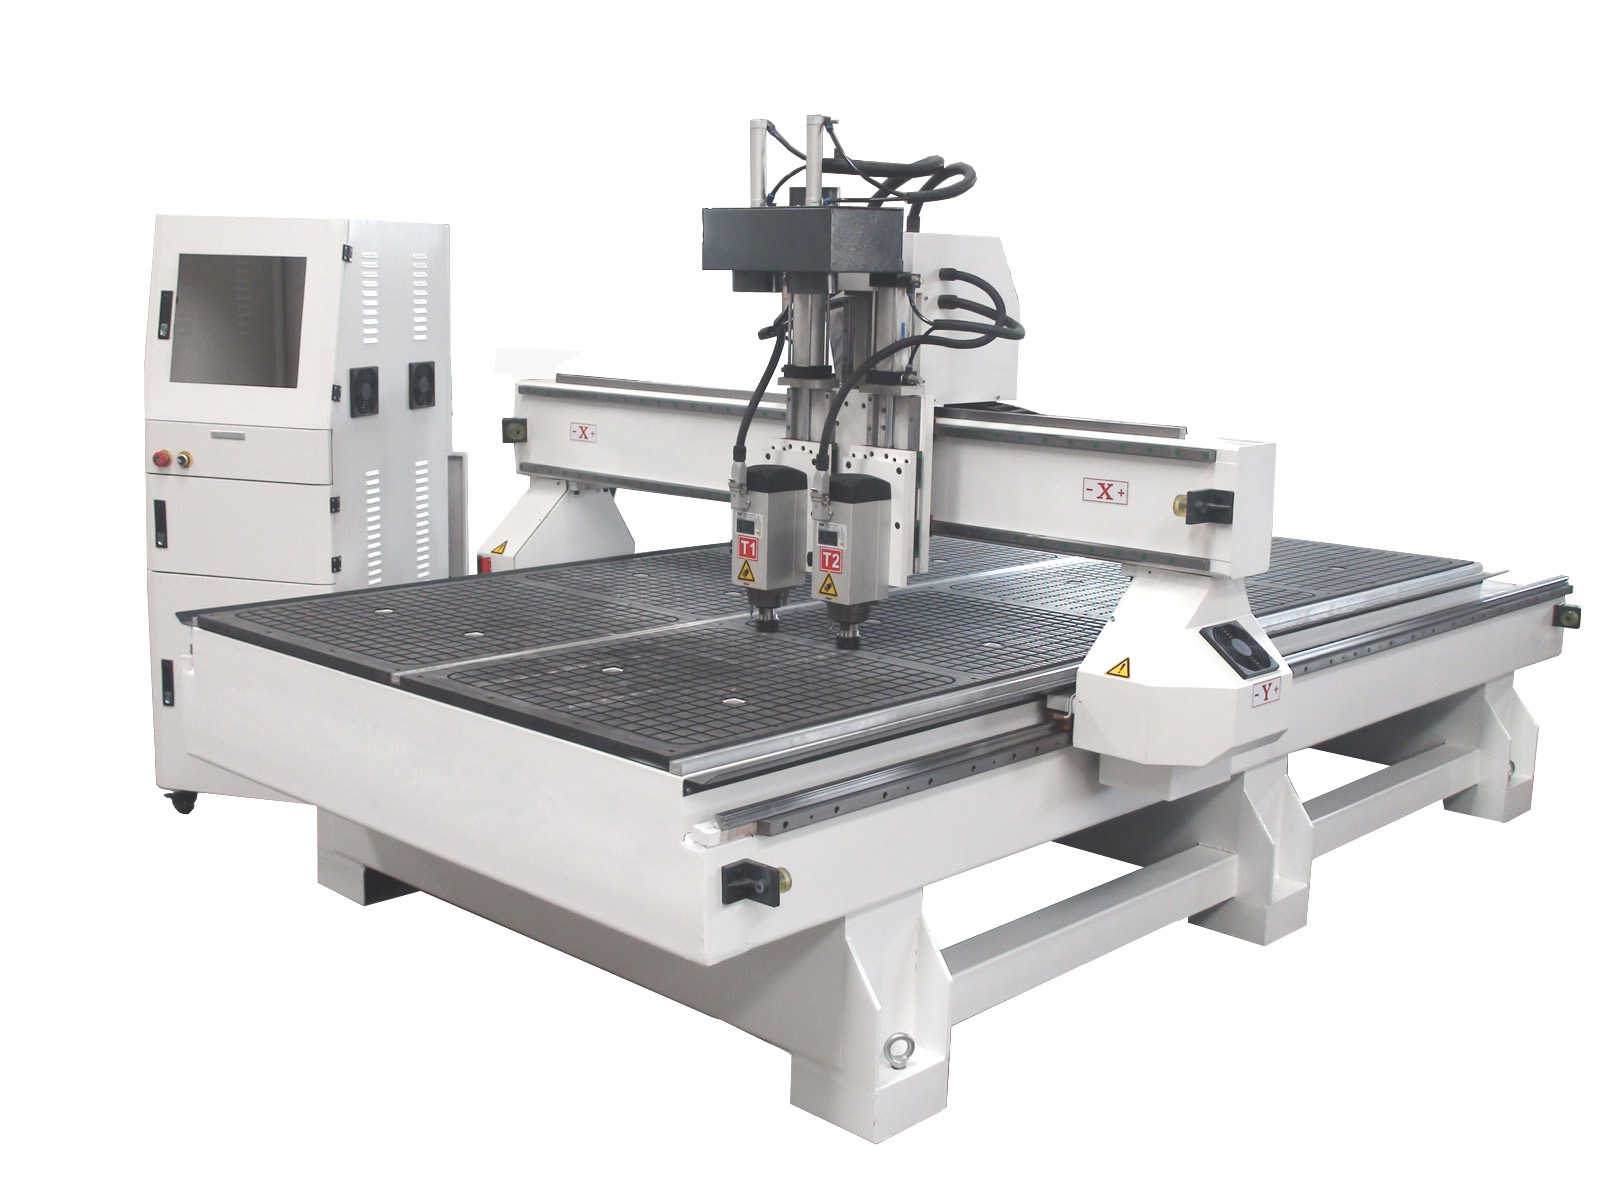 2 spindle machine